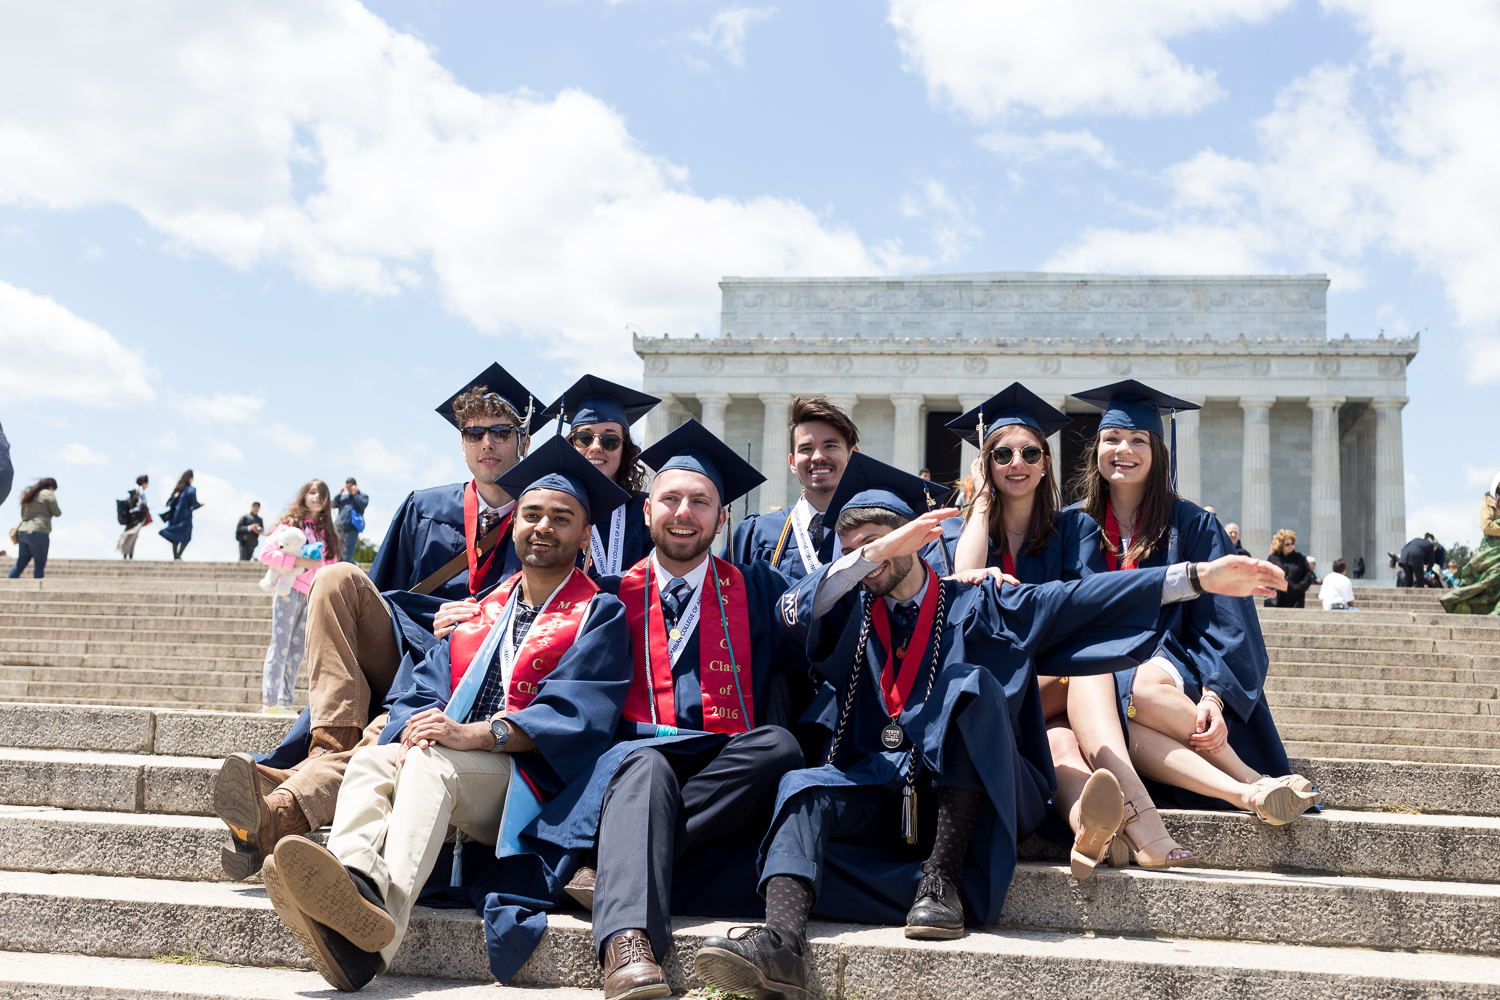 gwu_classof2016_commencement_washingtondc_george_washington_university_dc-58.jpg